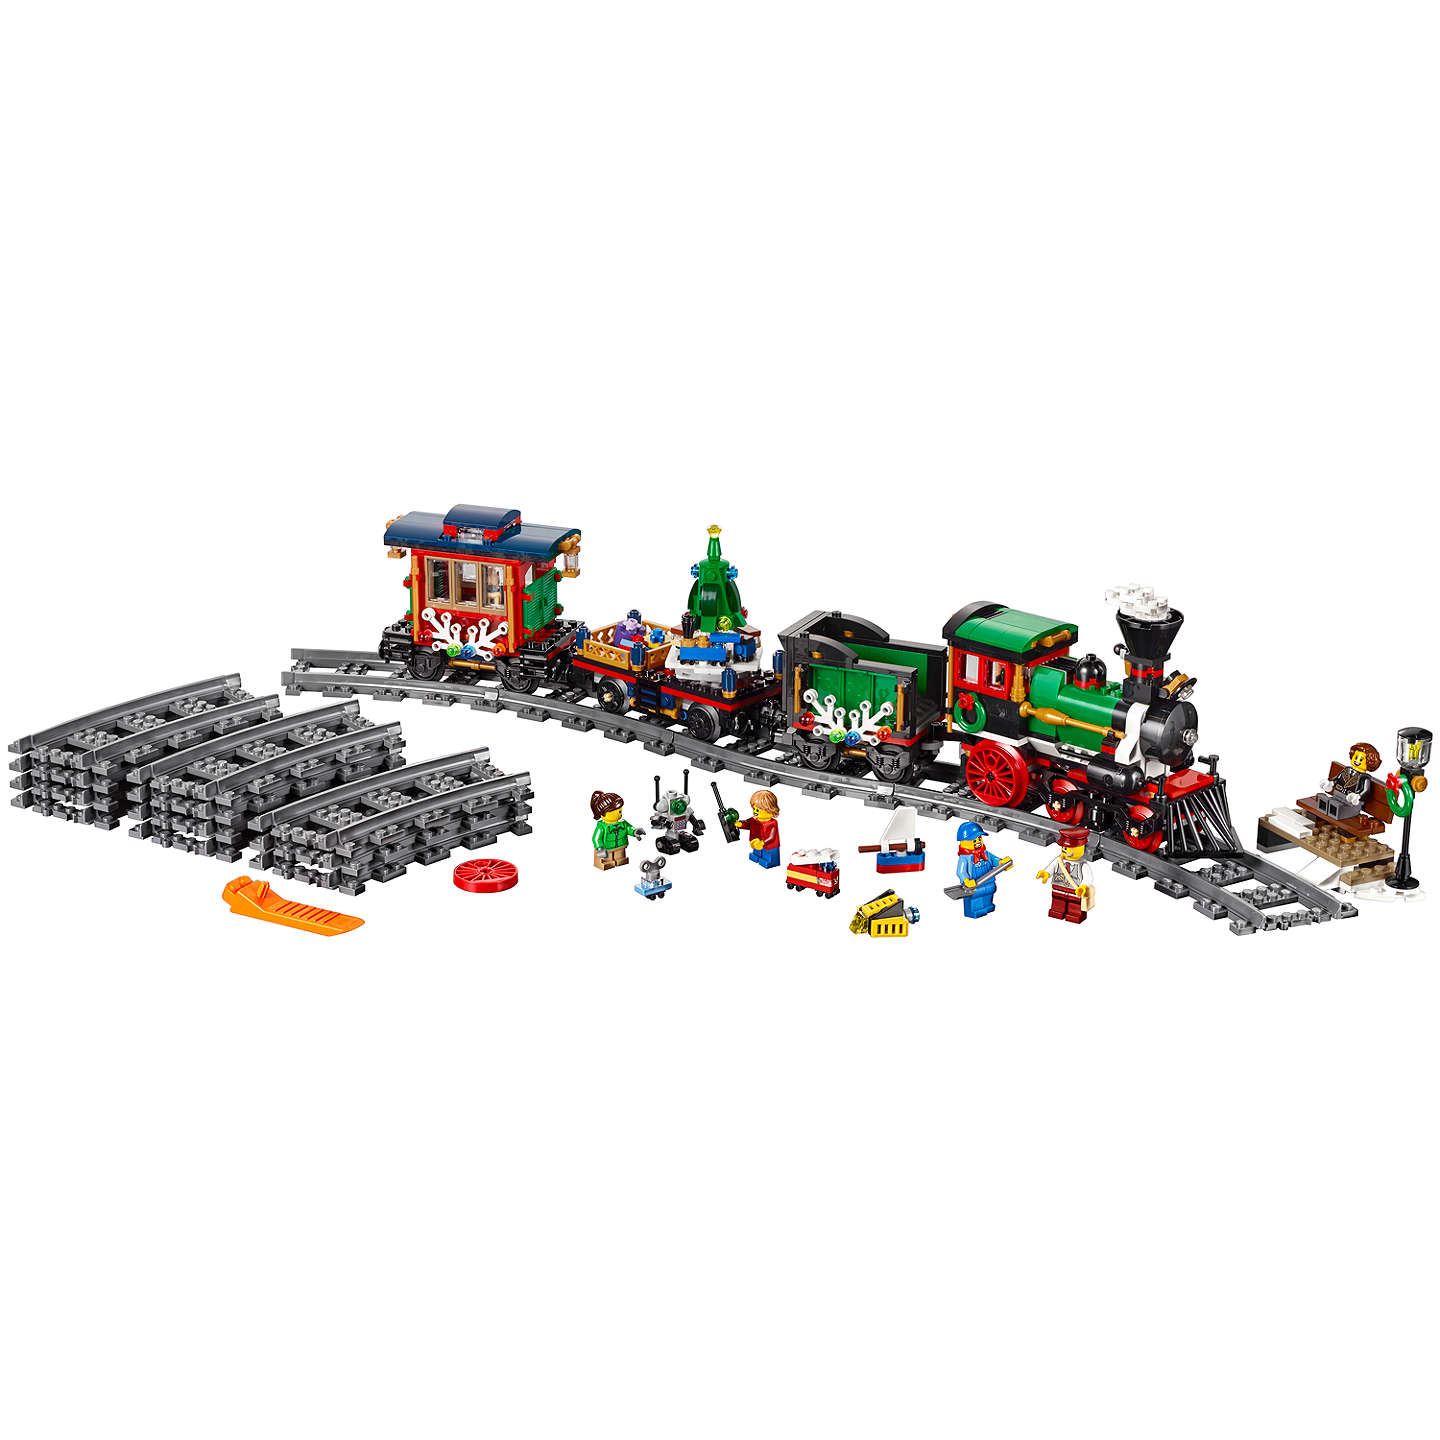 BuyLEGO Creator 10254 Winter Holiday Train Online at johnlewis.com